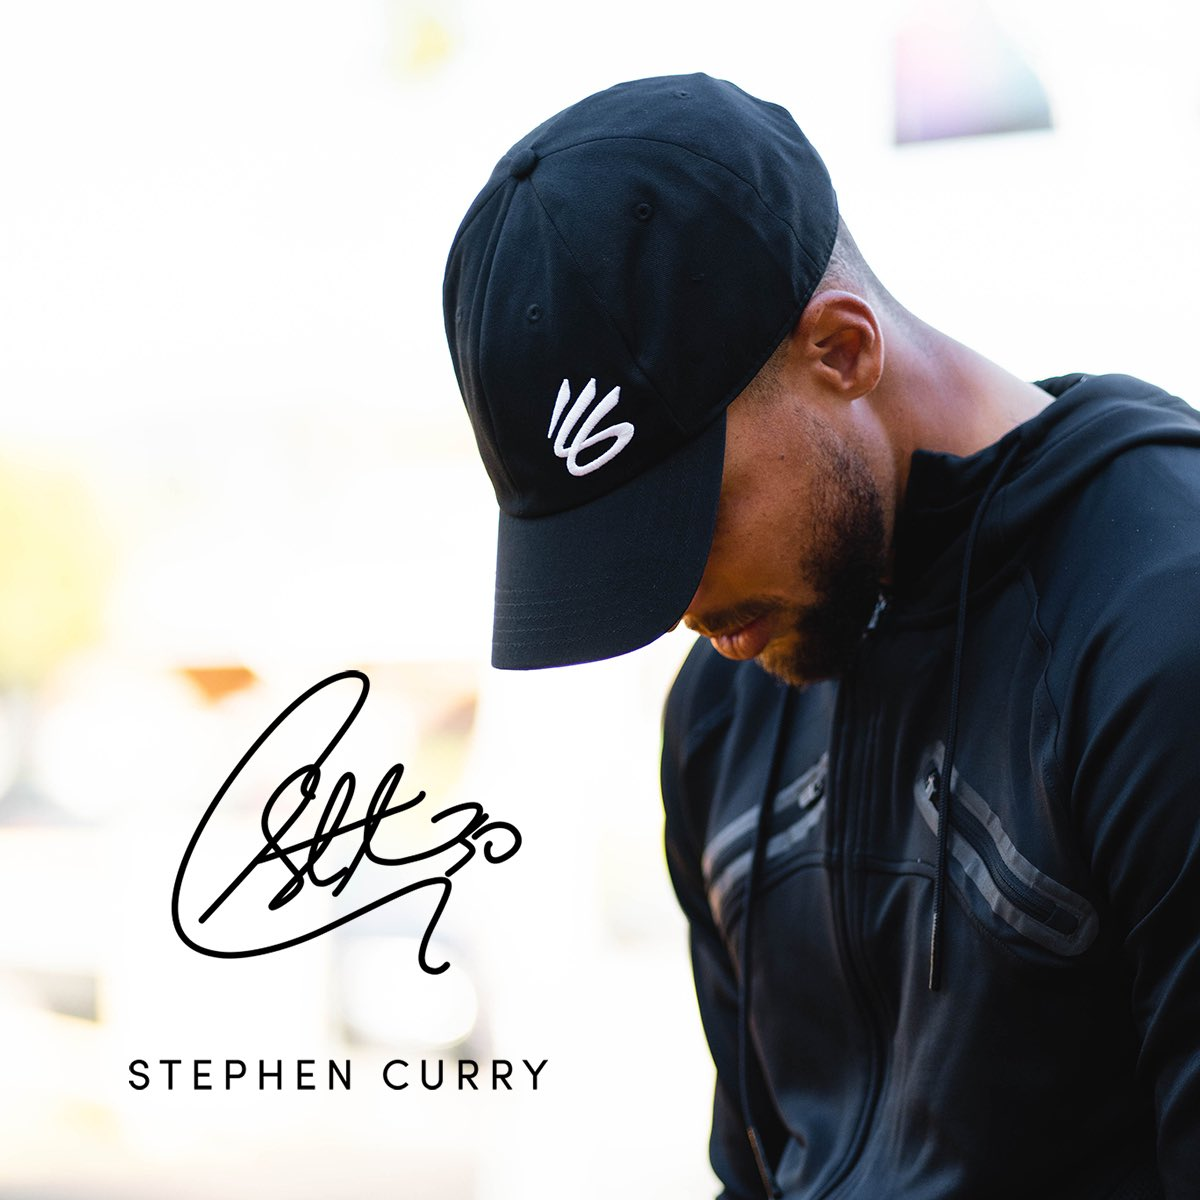 JUST ANNOUNCED! Get your hands on the EXCLUSIVE @StephenCurry30 Golf Bundle, including unique items only found here. Don't miss out, limited supplies only. 100% of the proceeds will be donated to the Howard University Golf Endowment Fund.  #GivingTuesday